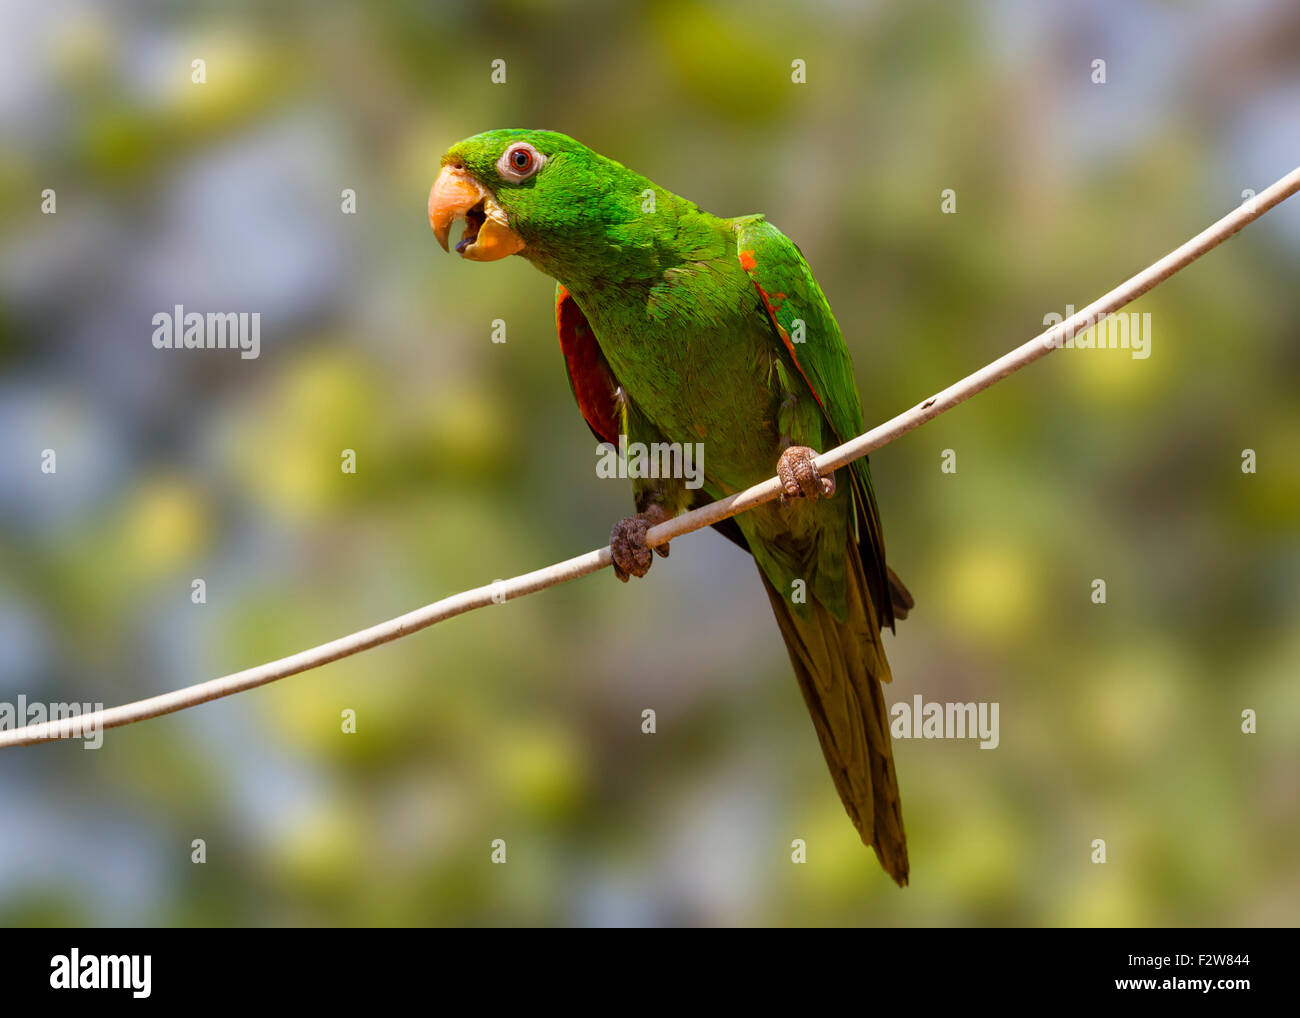 Pionus is a genus of medium-sized parrots native to Mexico, and Central and South America. - Stock Image